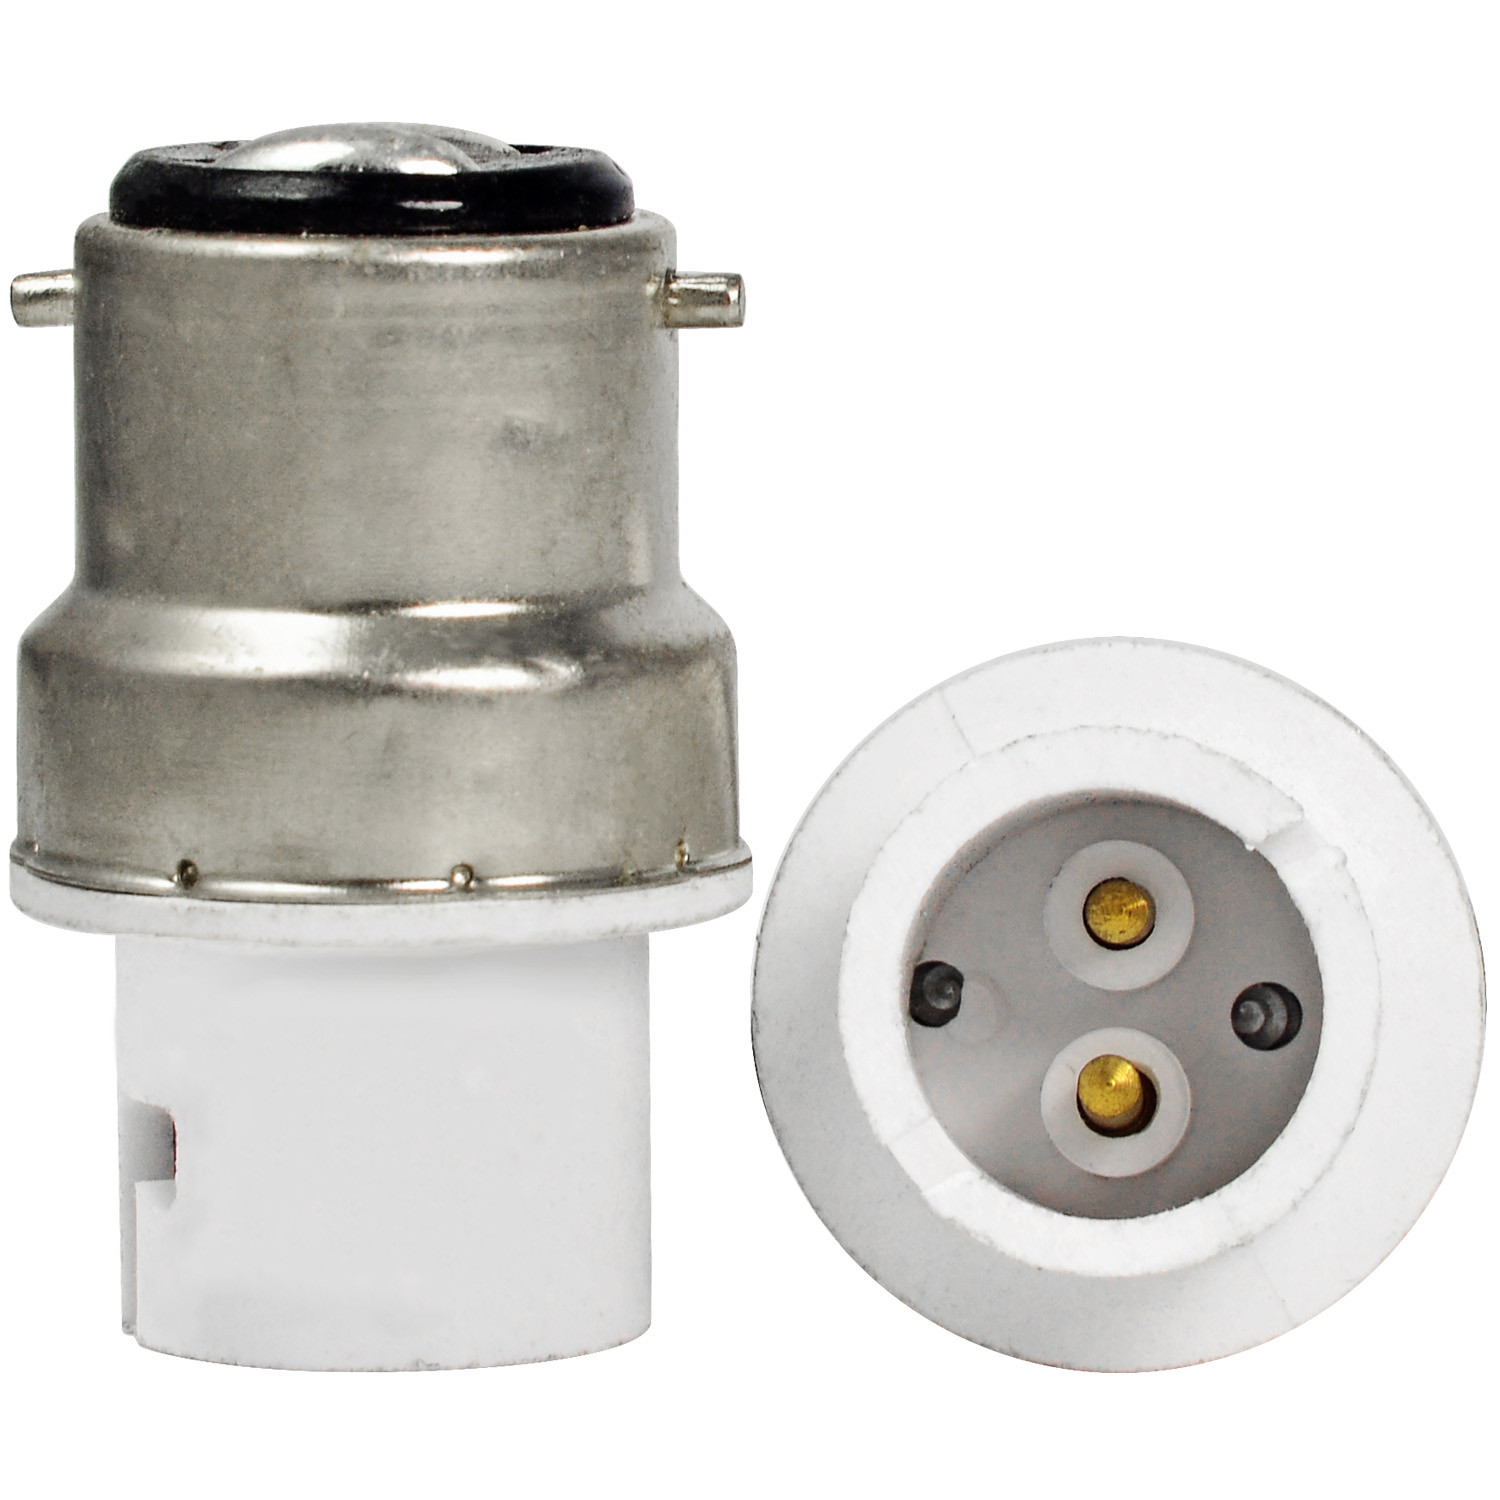 MENGS® B22 to BA15D Lamp Holder Temperature-RESISTANCE with ABS Material (AC 100 - 240V) Converter Adapter High / Extender / Holder